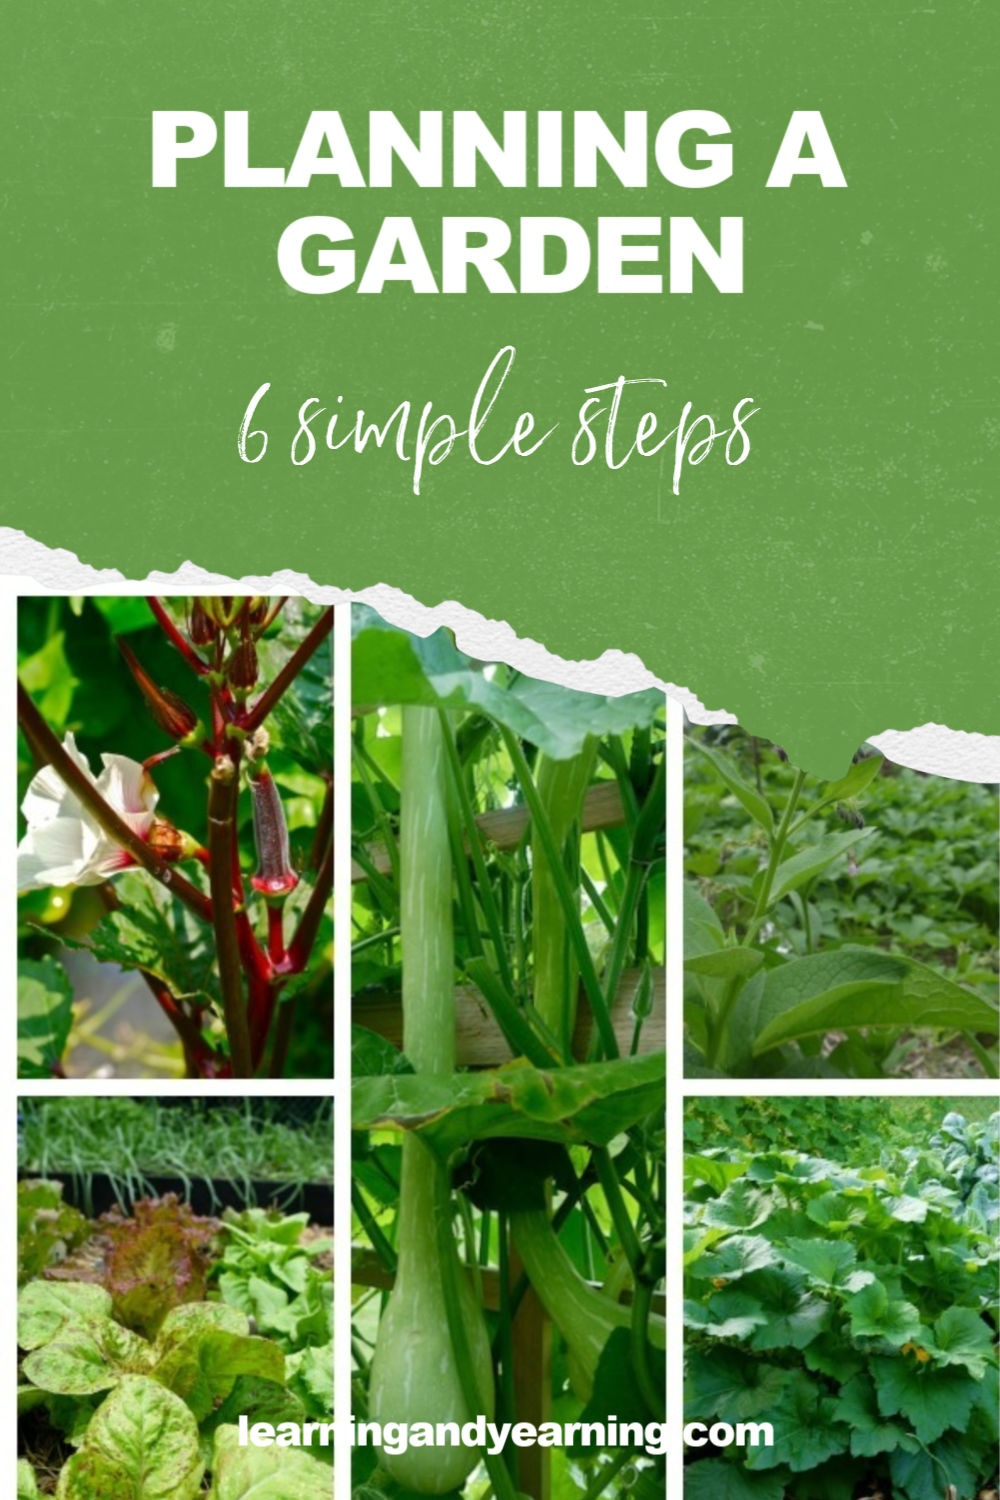 6 simple steps to planning a vegetable garden!